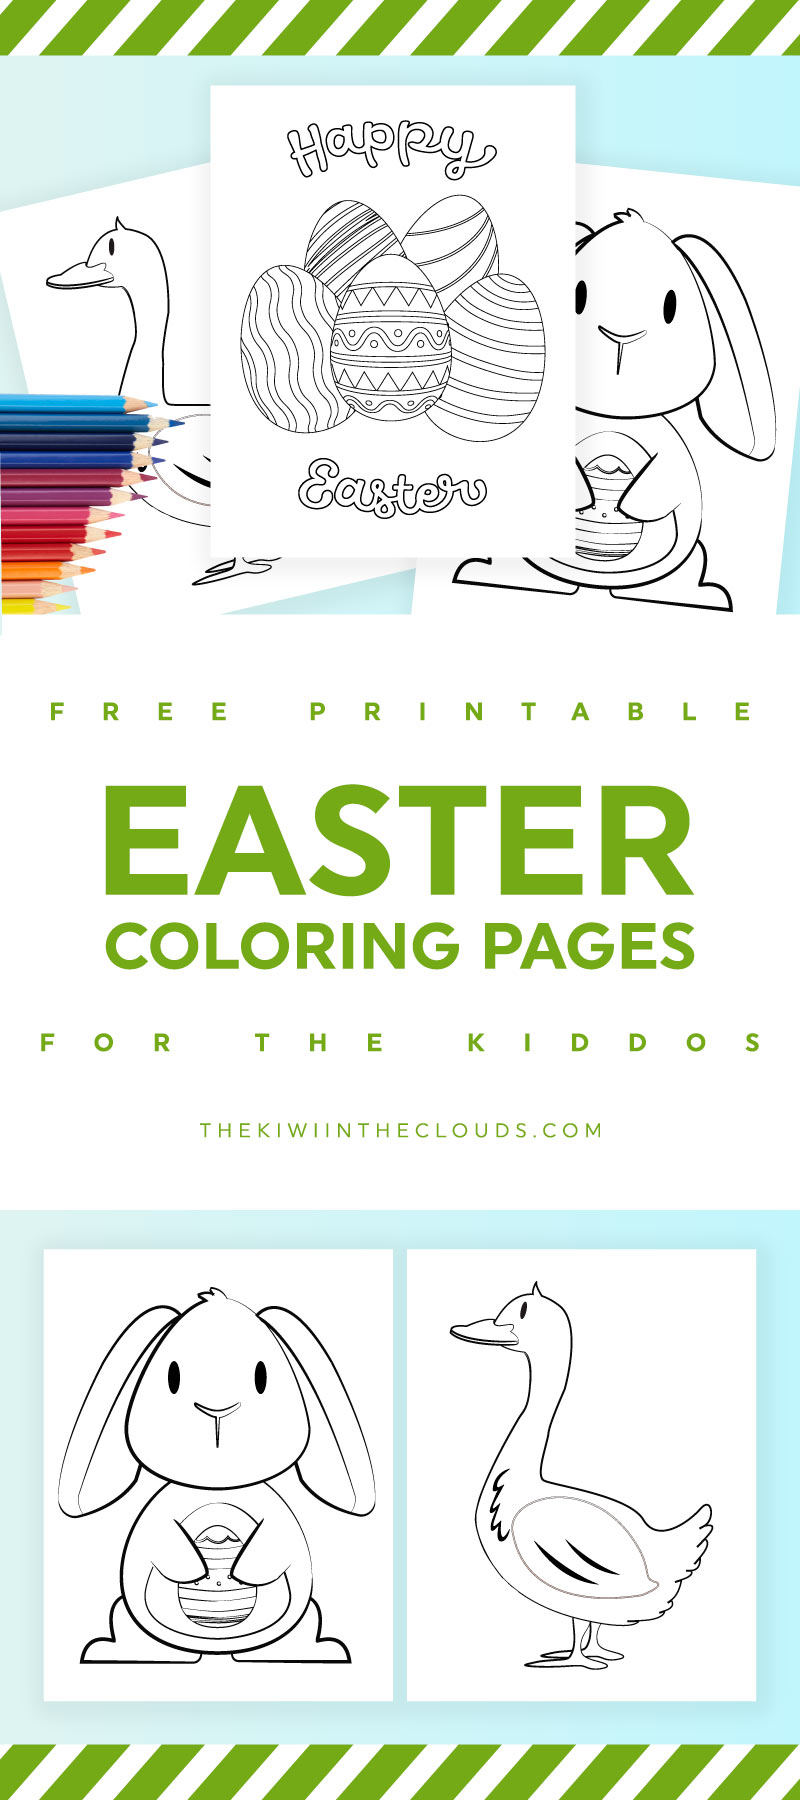 Excellent Easter Printable Coloring Pages For Kids